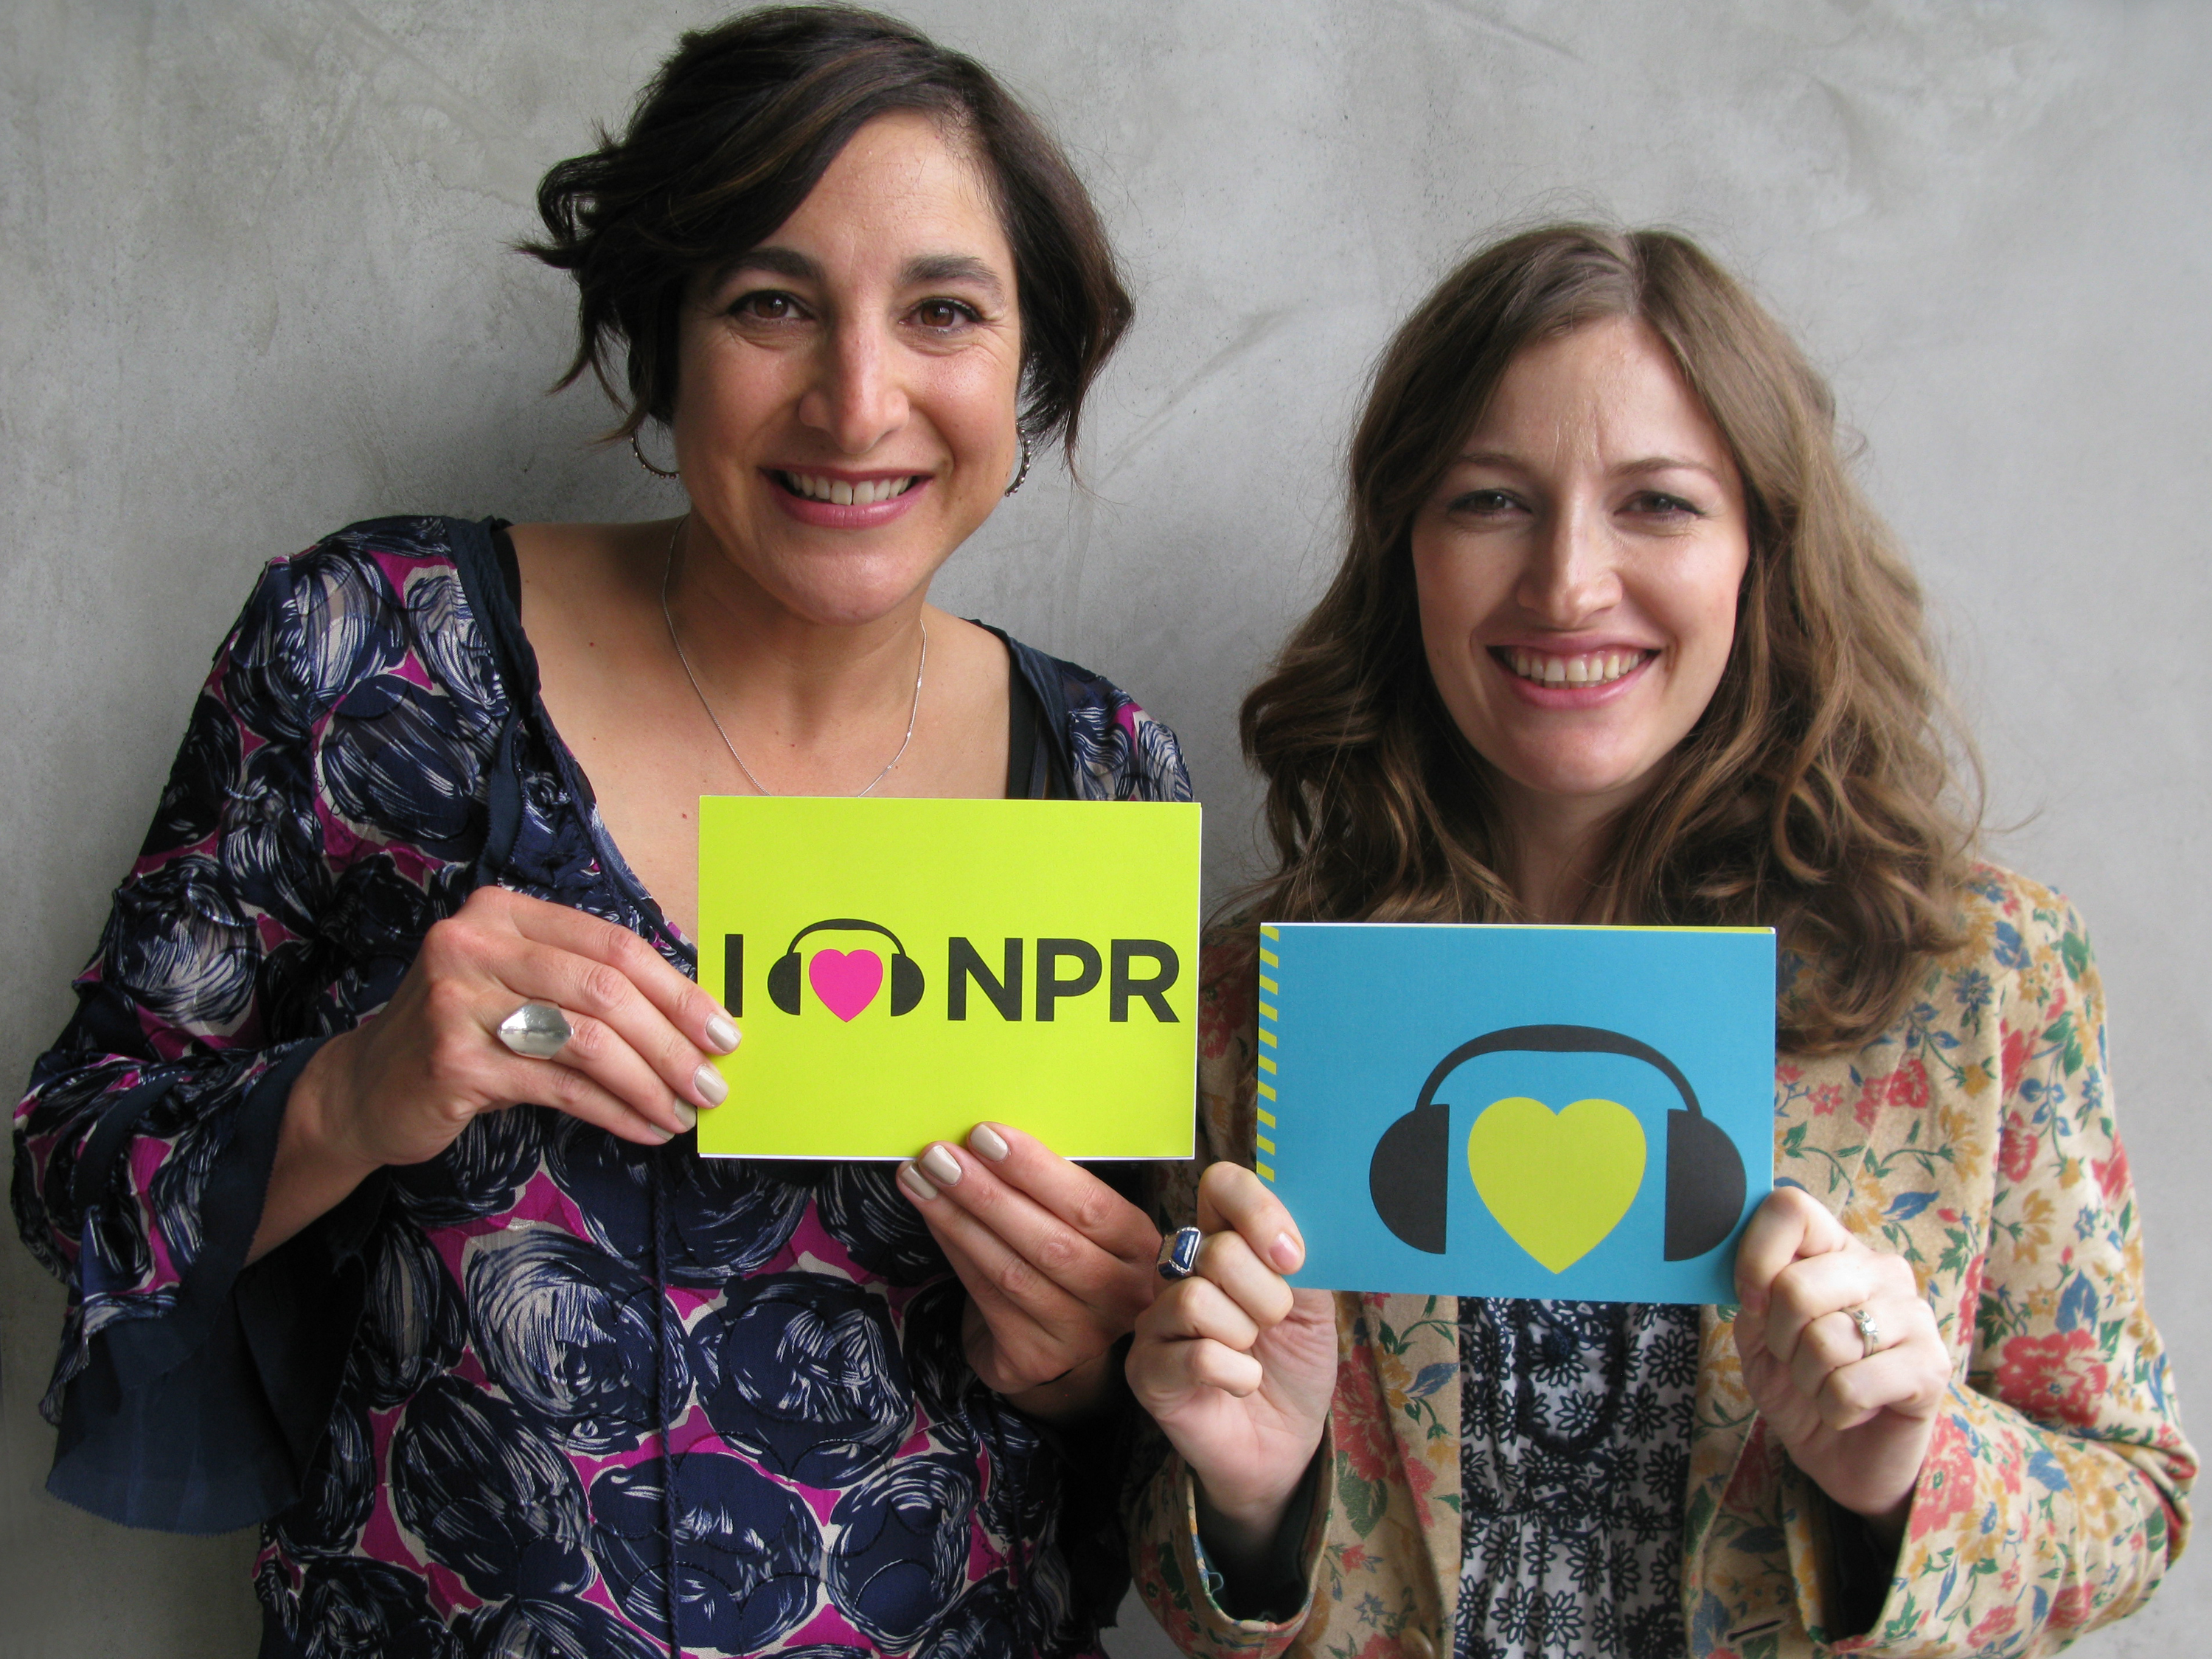 Once upon a time Pixar had no female lead characters, that is until Brave hit theaters last year. Producer Katherine Sarafian and actress Kelly Macdonald talked about the movie, now nominated for animated feature film, on Morning Edition. No fairy tales here: Sarafian and Macdonald heart NPR. (http://n.pr/LajBTt)